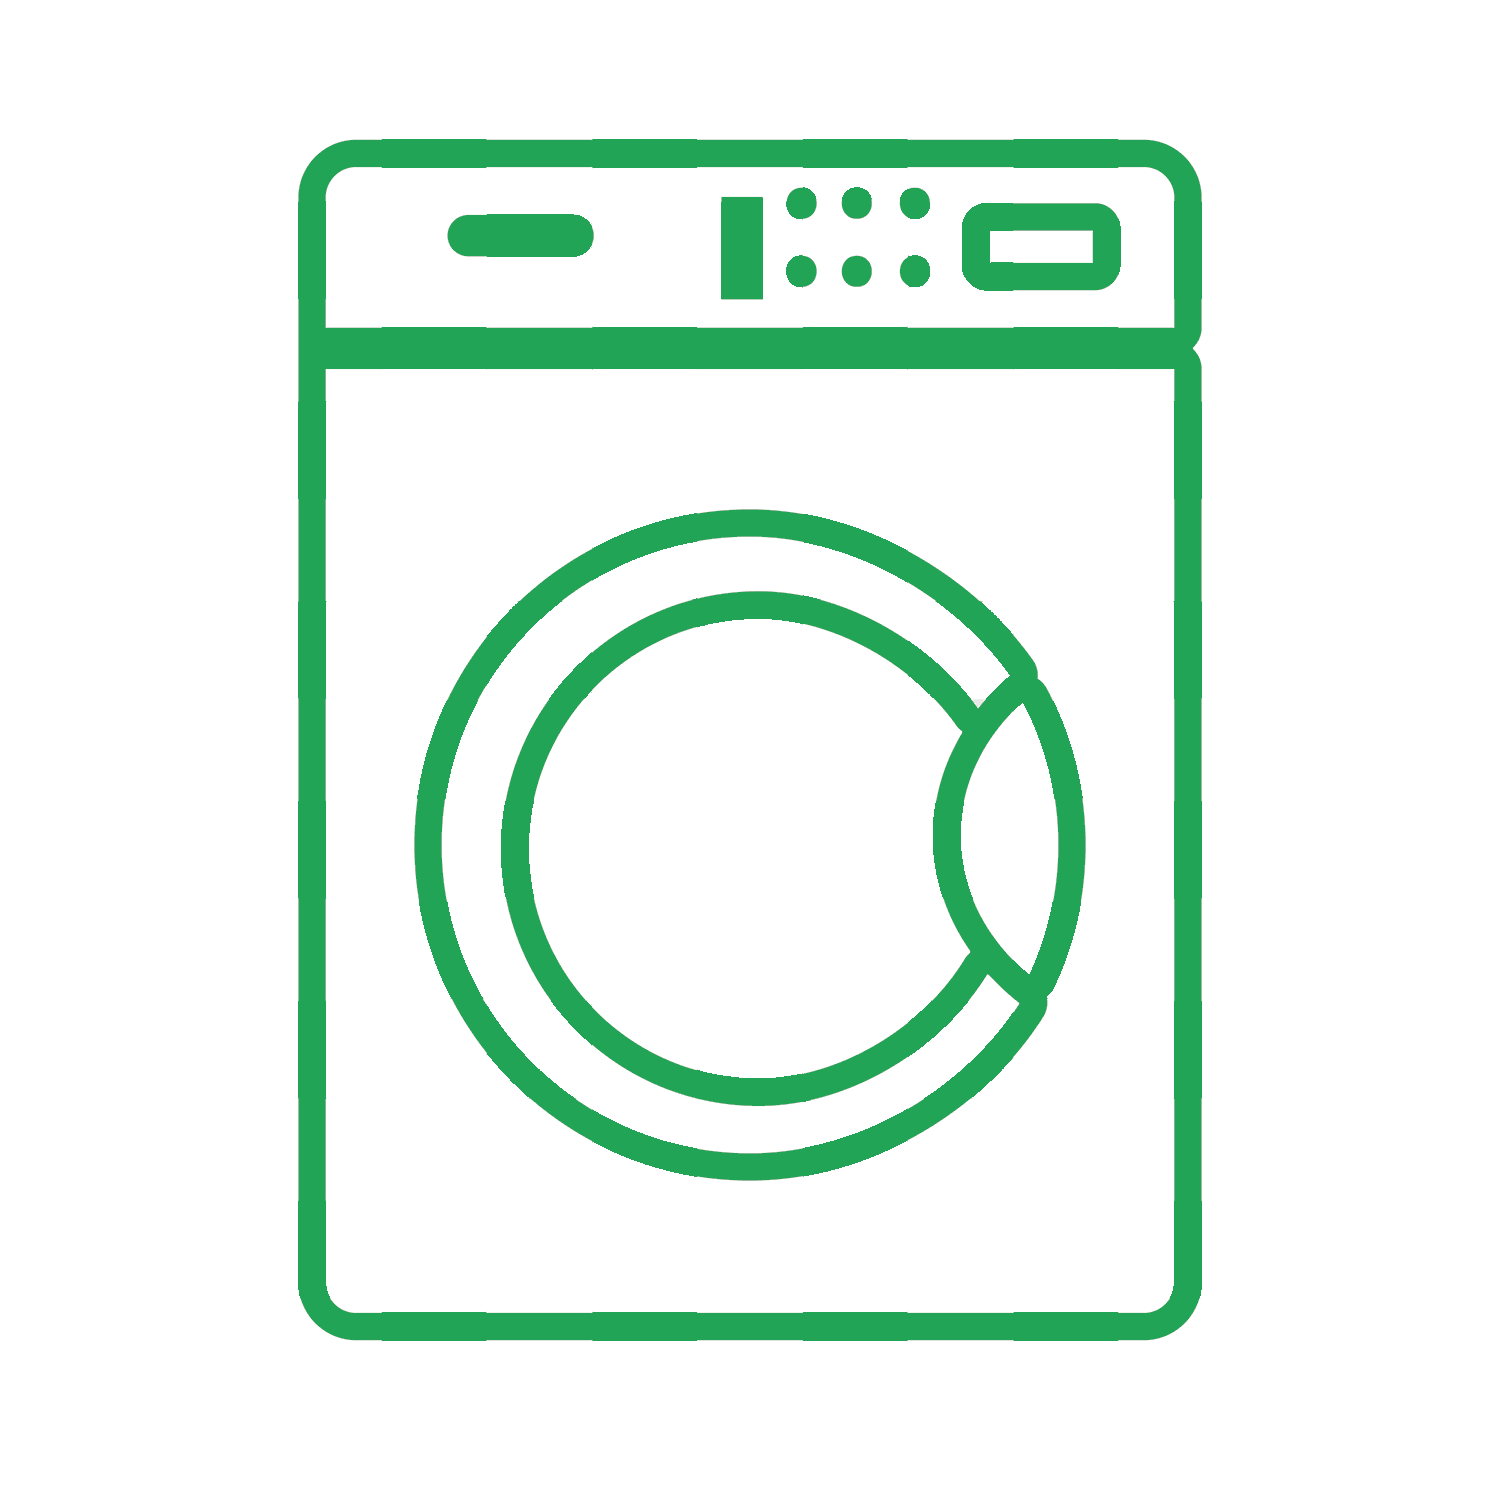 washing-machine-symbol-green